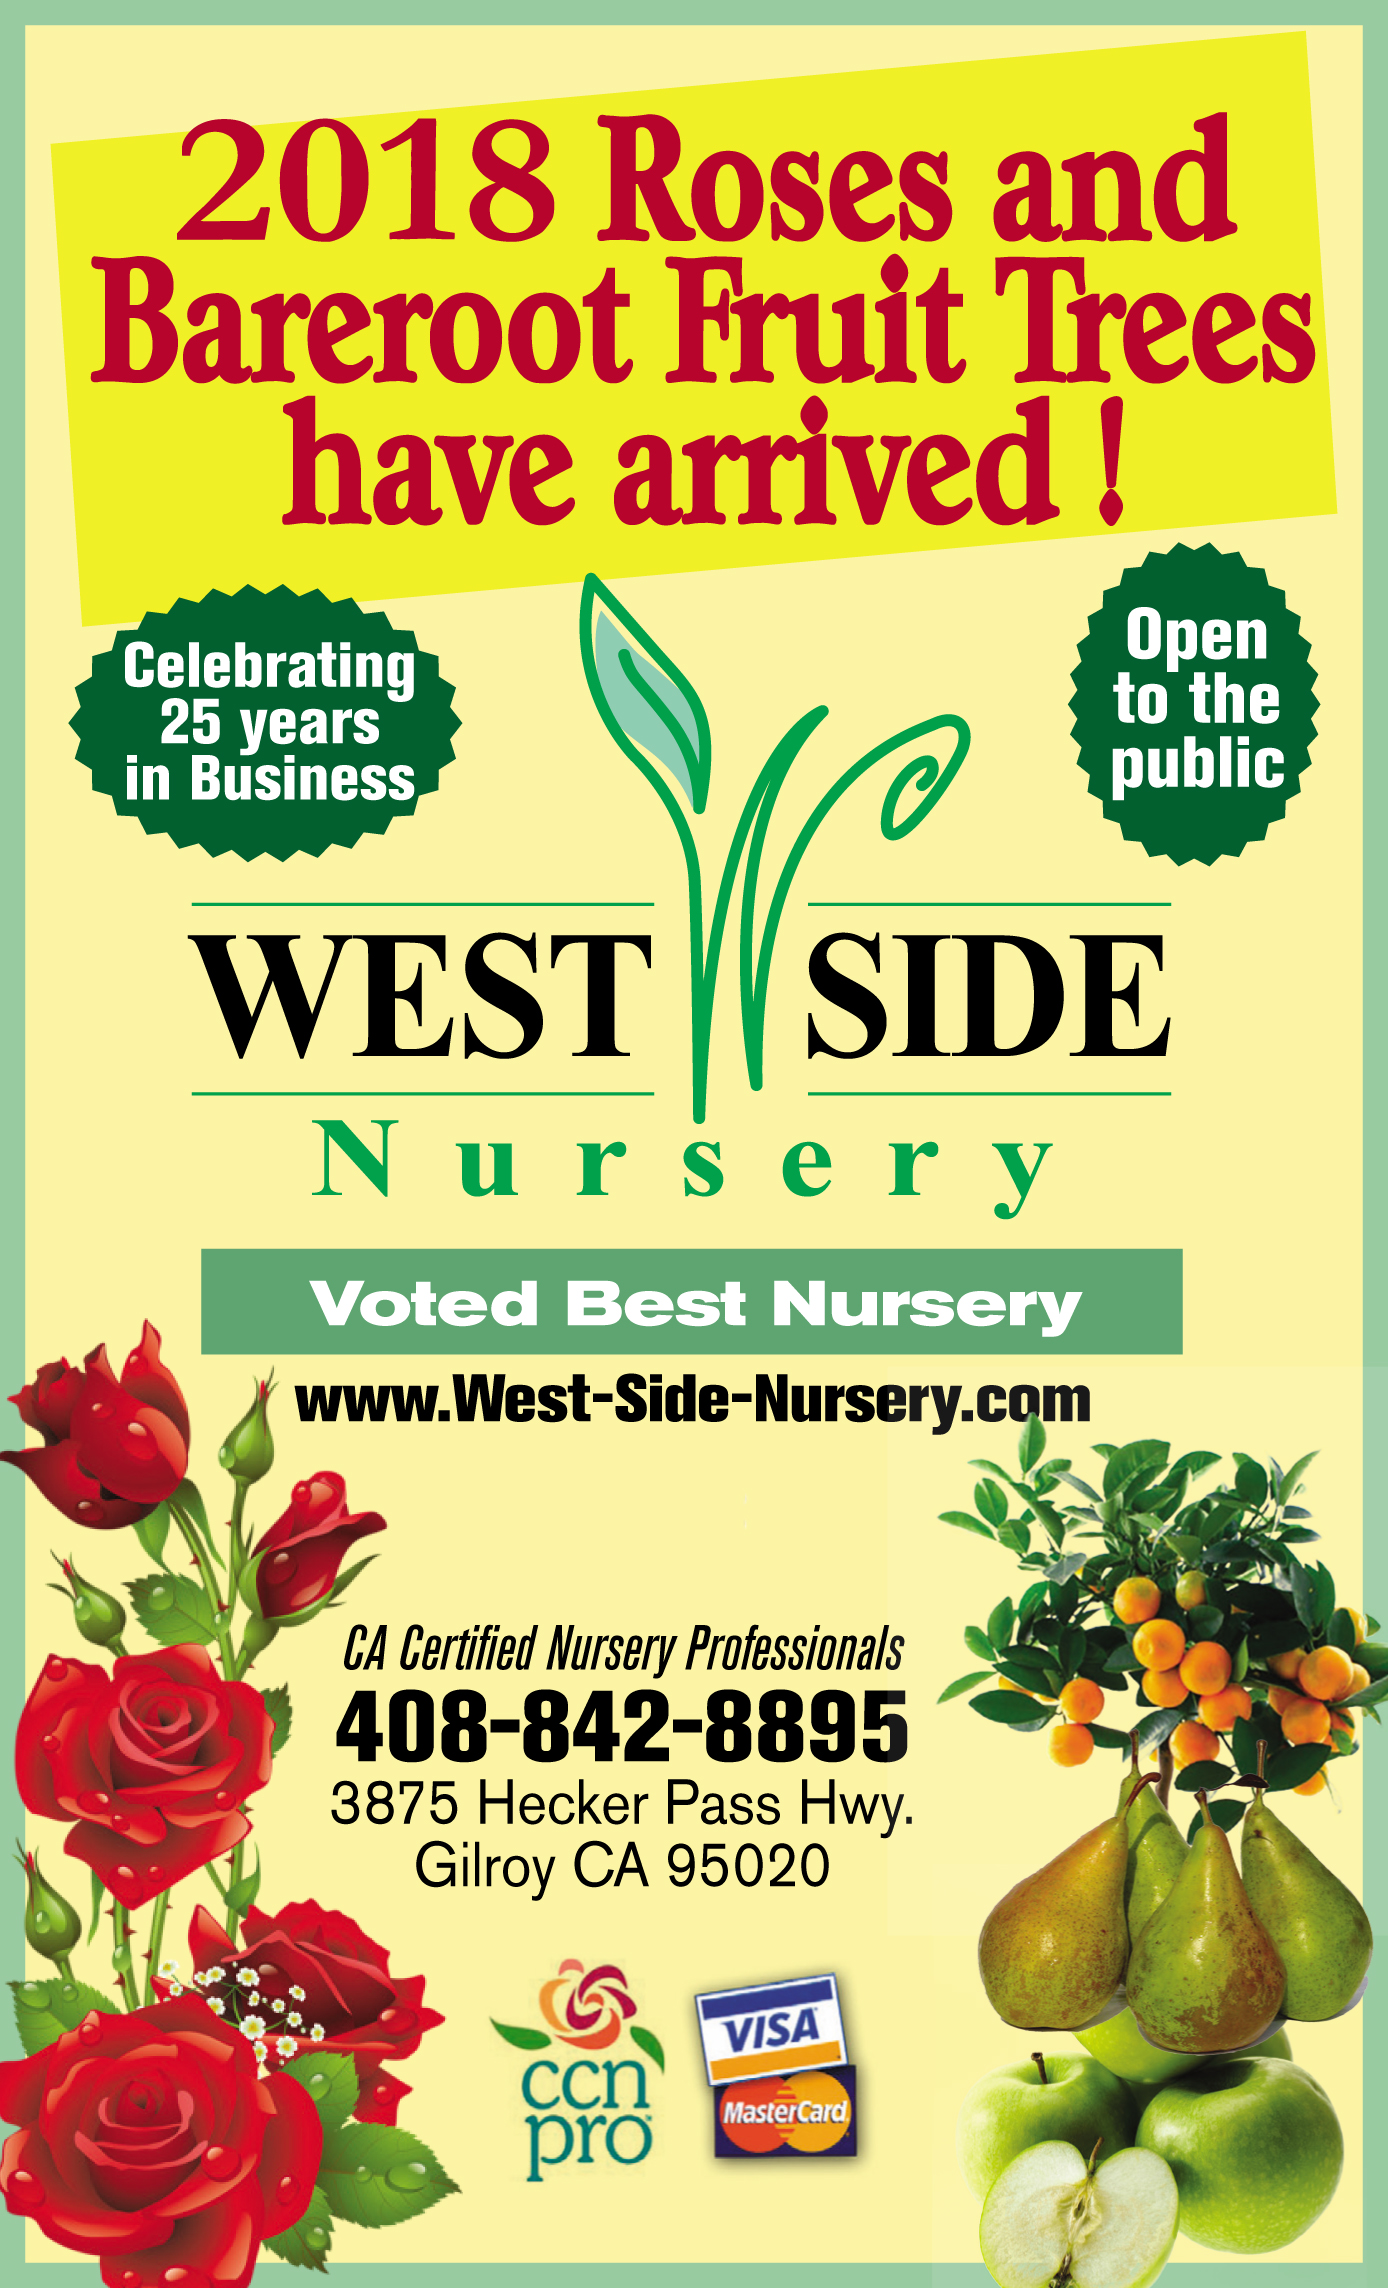 West Side Nursery